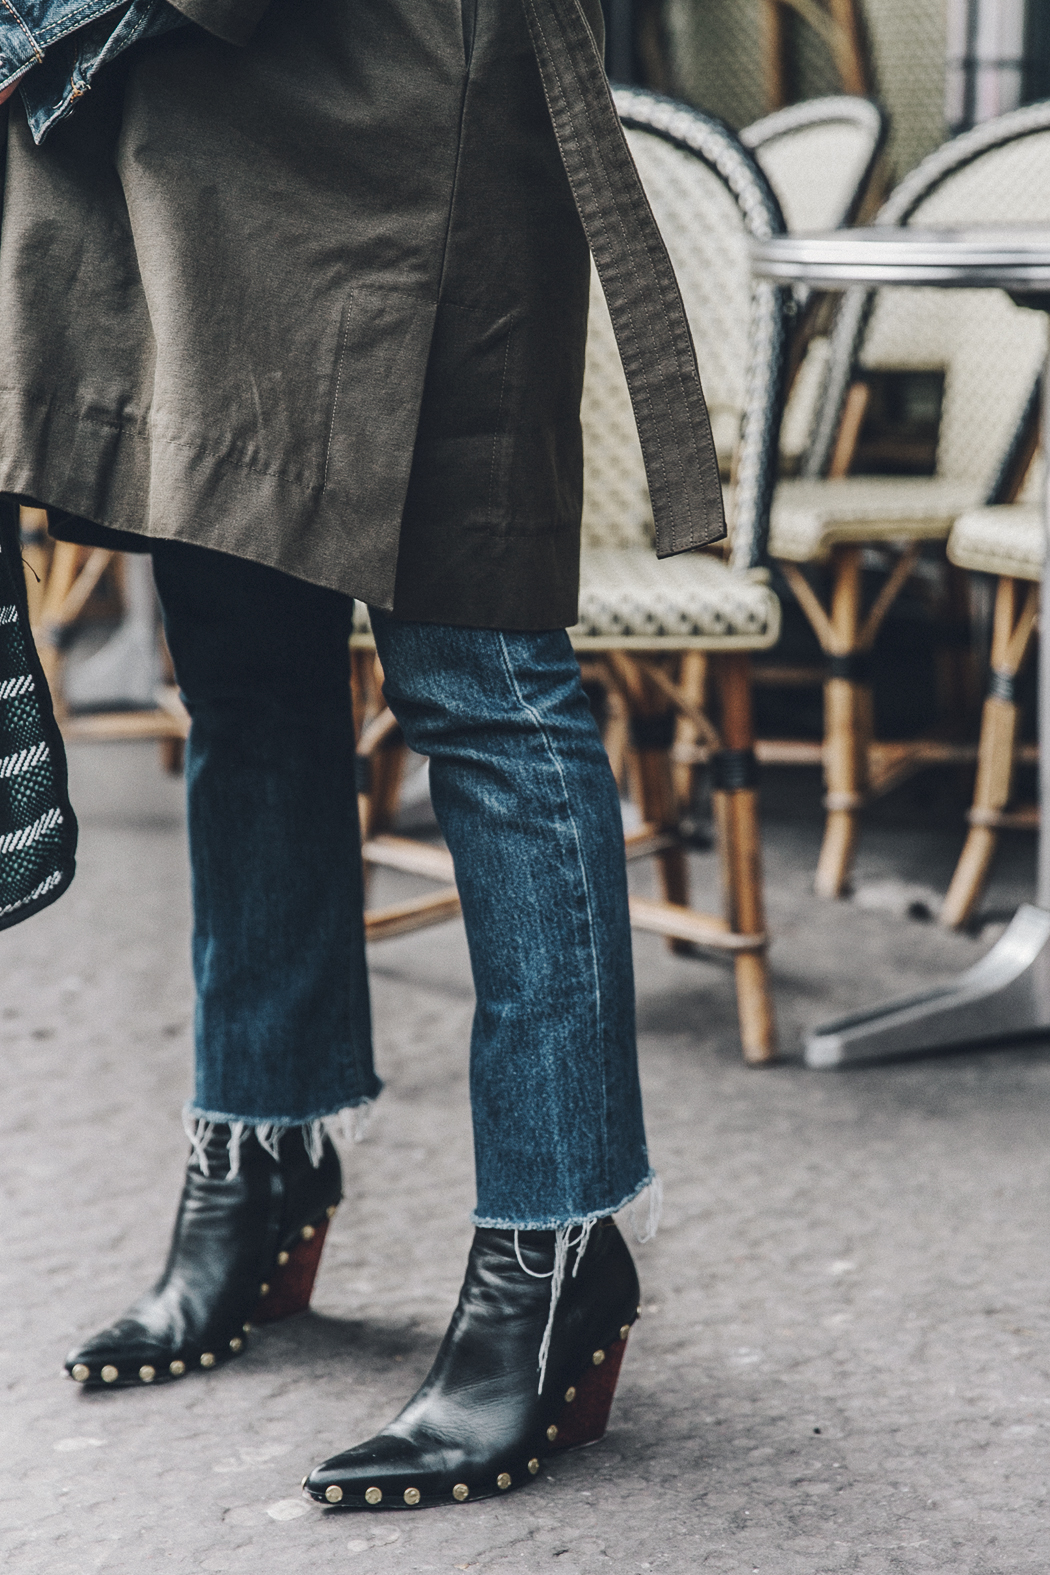 Layers-Denim_Levis-Parka-Striiped_Basket-Outfit-Celine_Boots-Street_Style-19